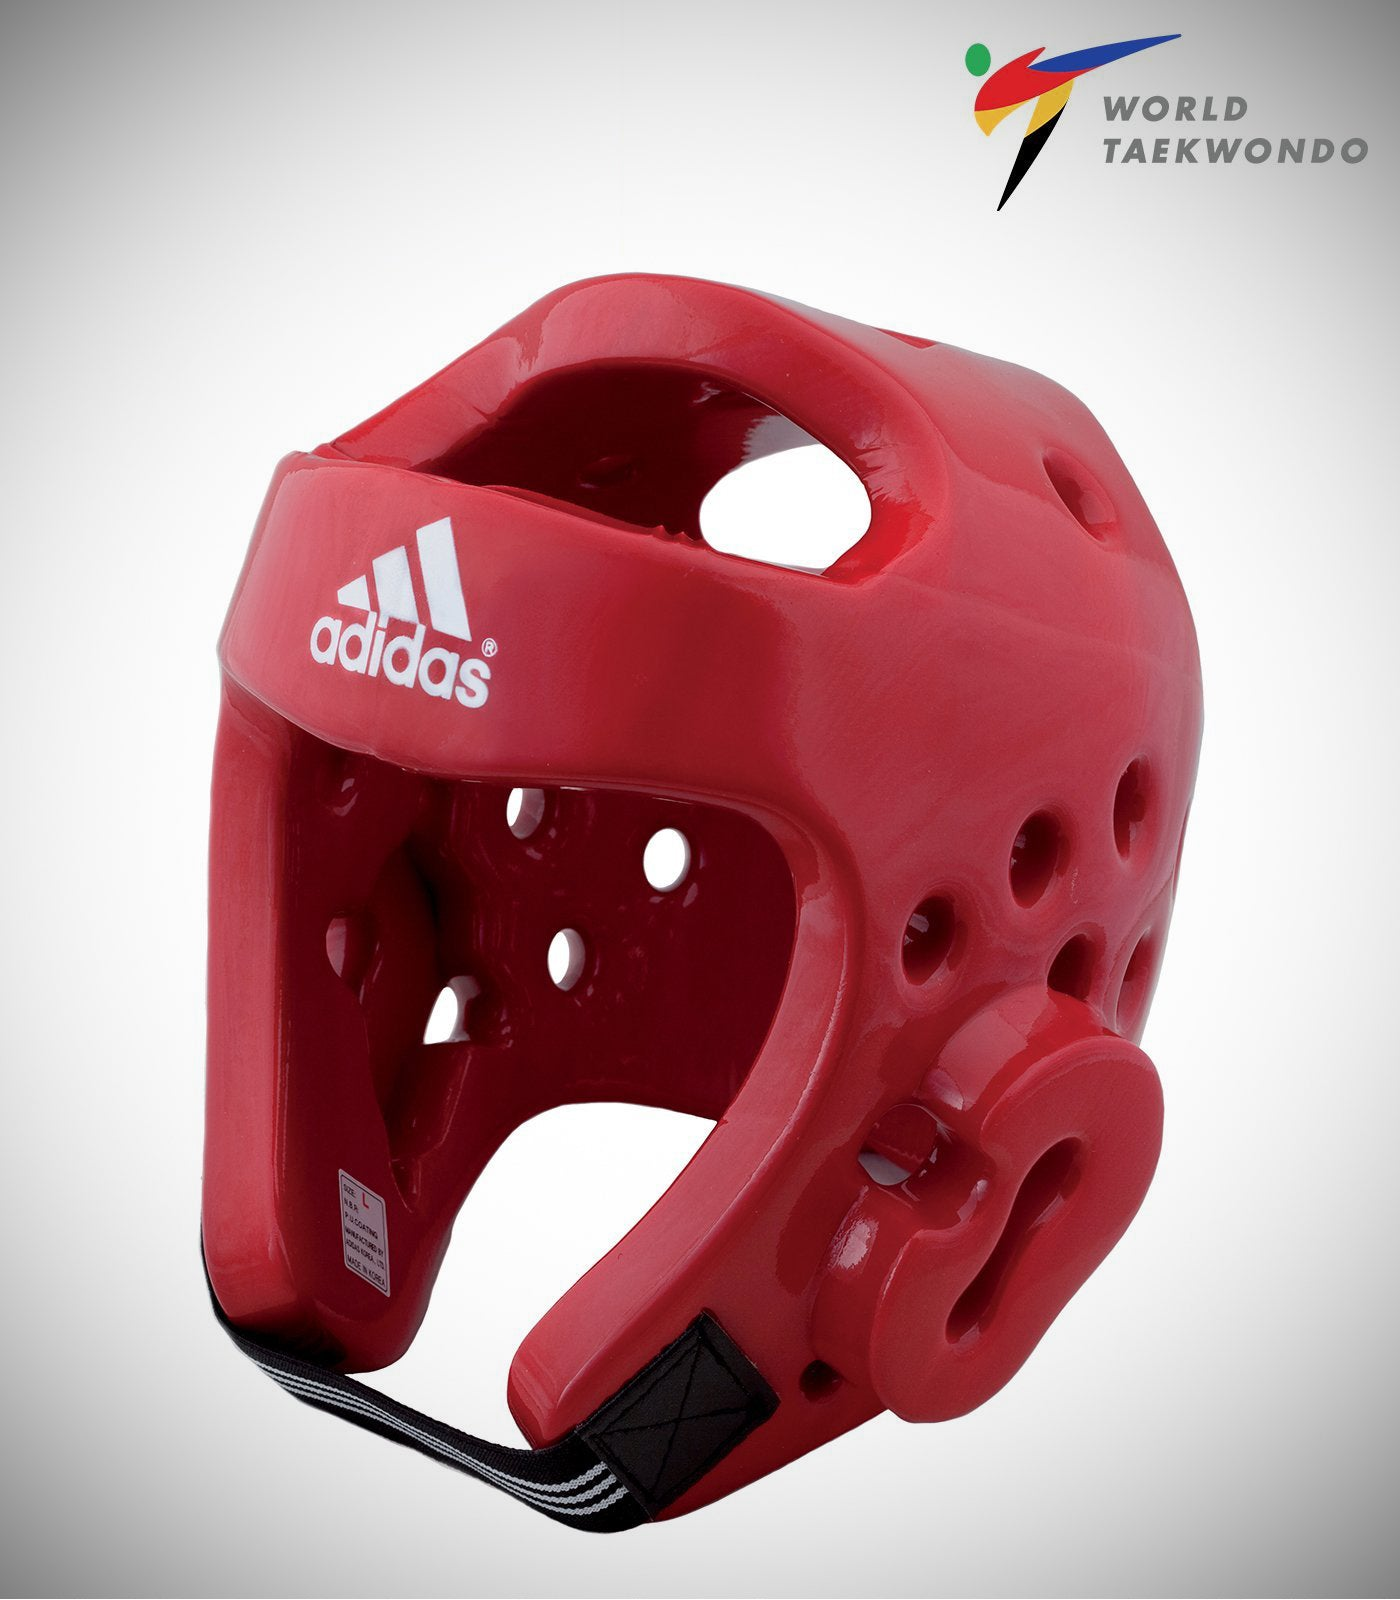 ADIDAS NEW TAEKWONDO DELUXE HEADGEAR RED